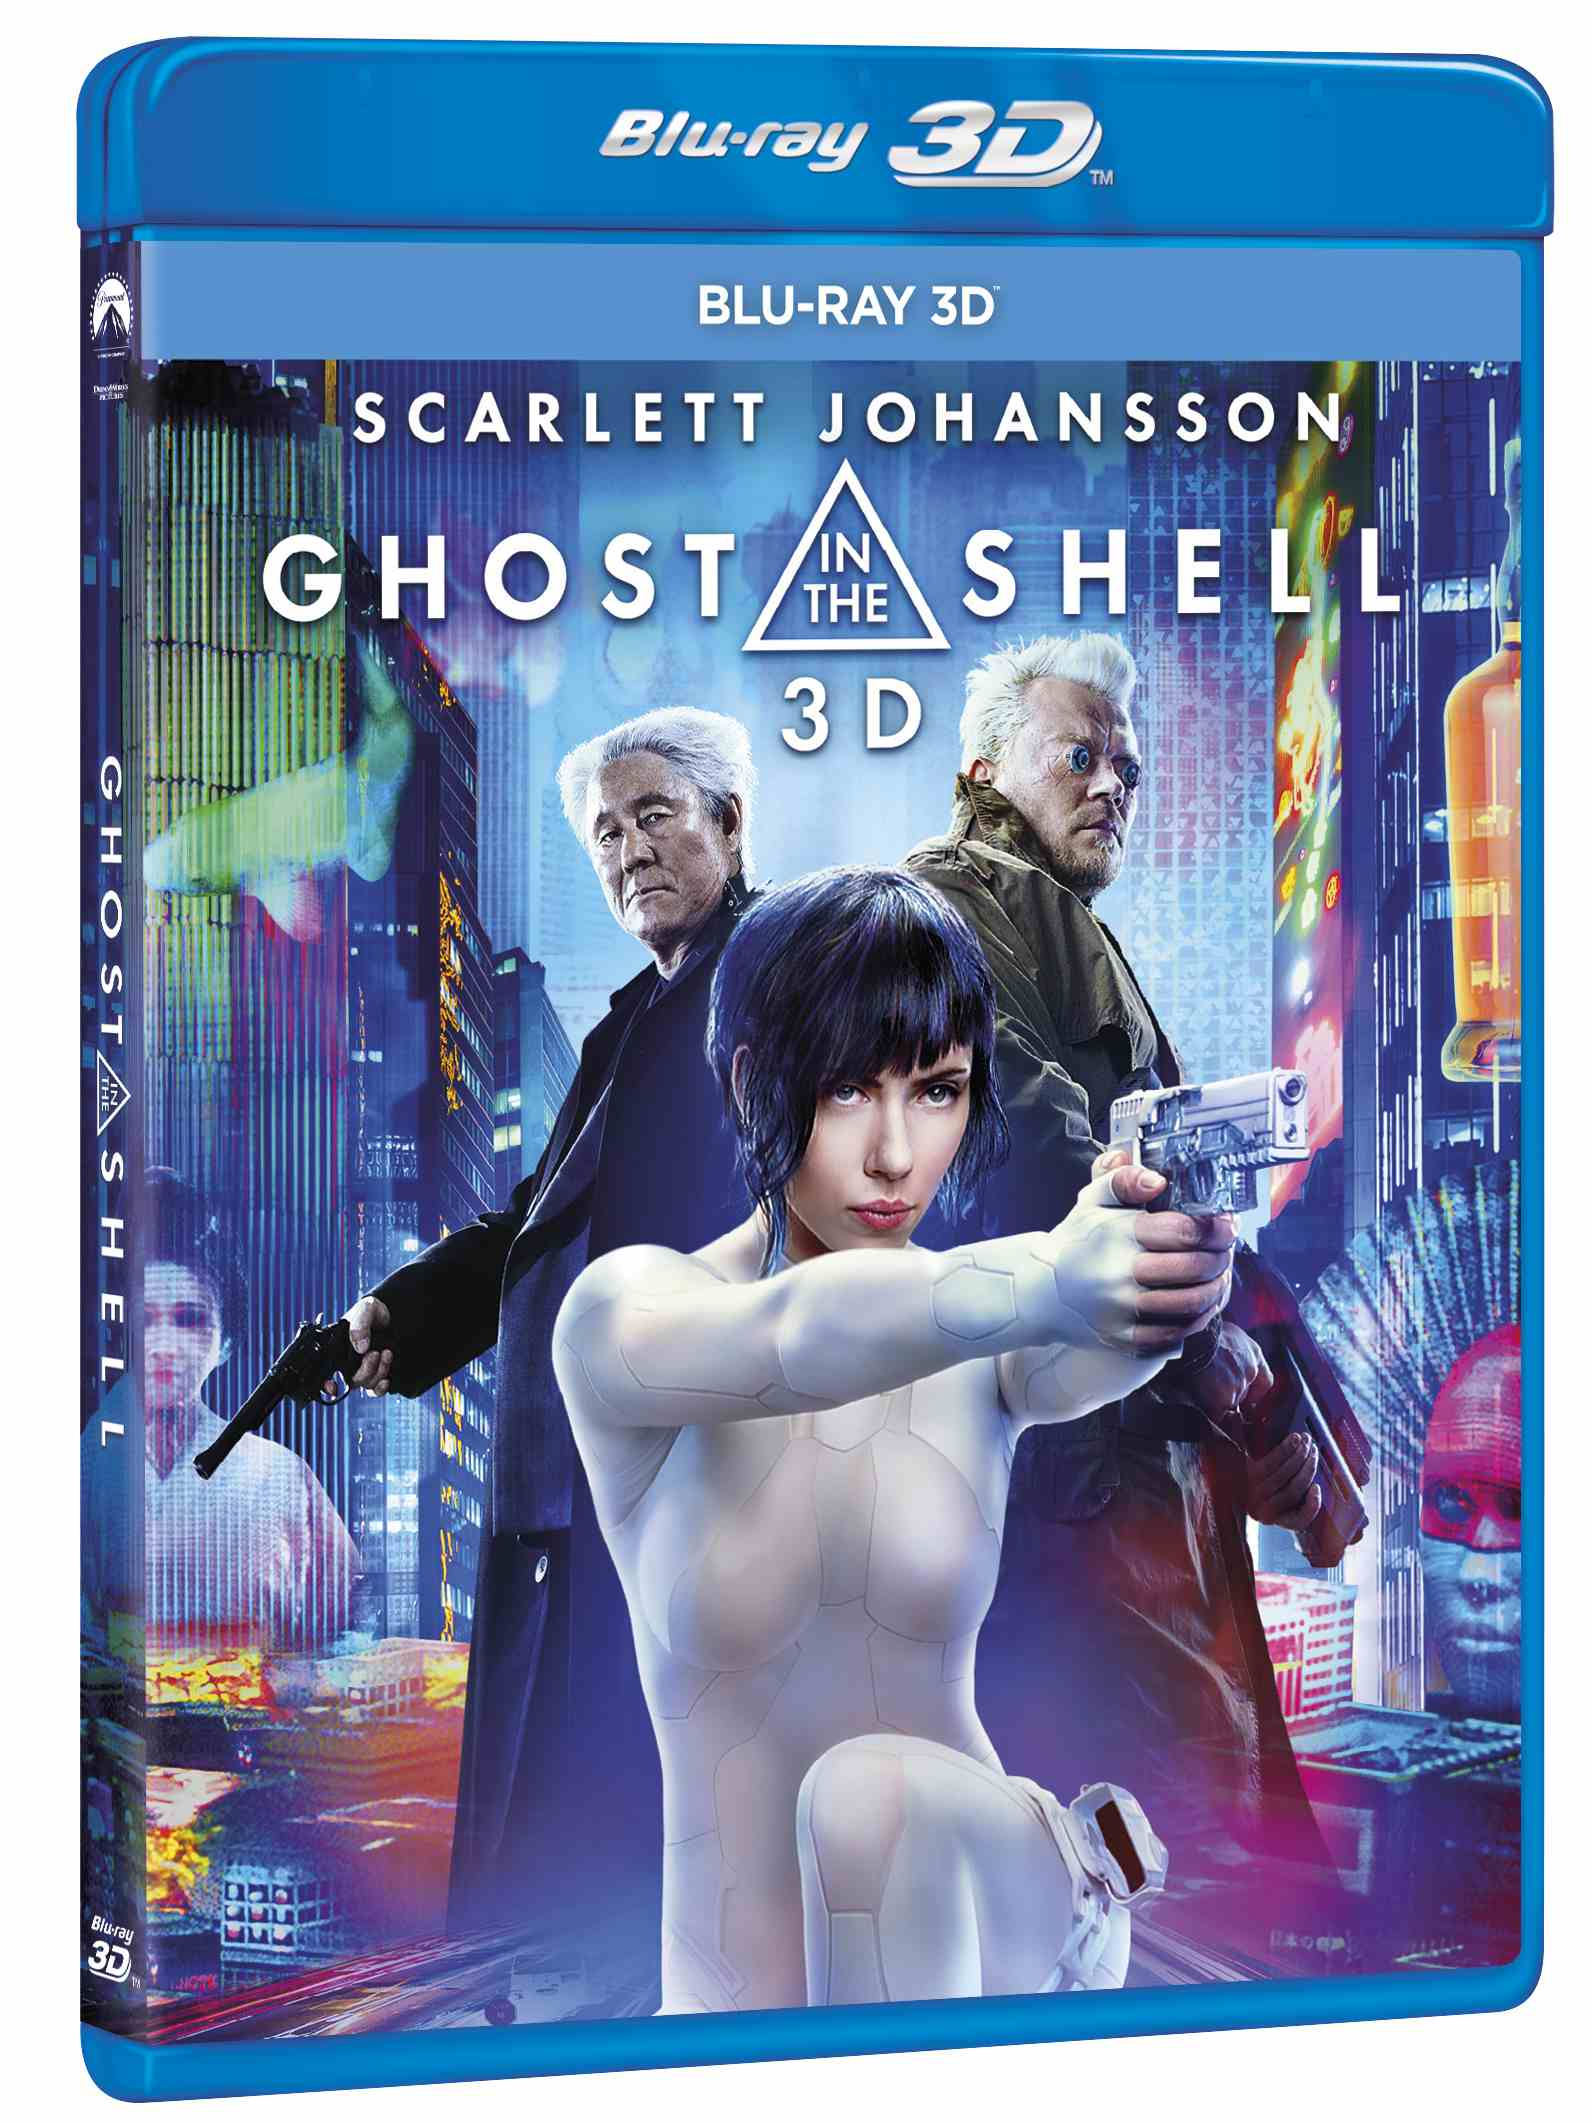 GHOST IN THE SHELL - Blu-ray 3D